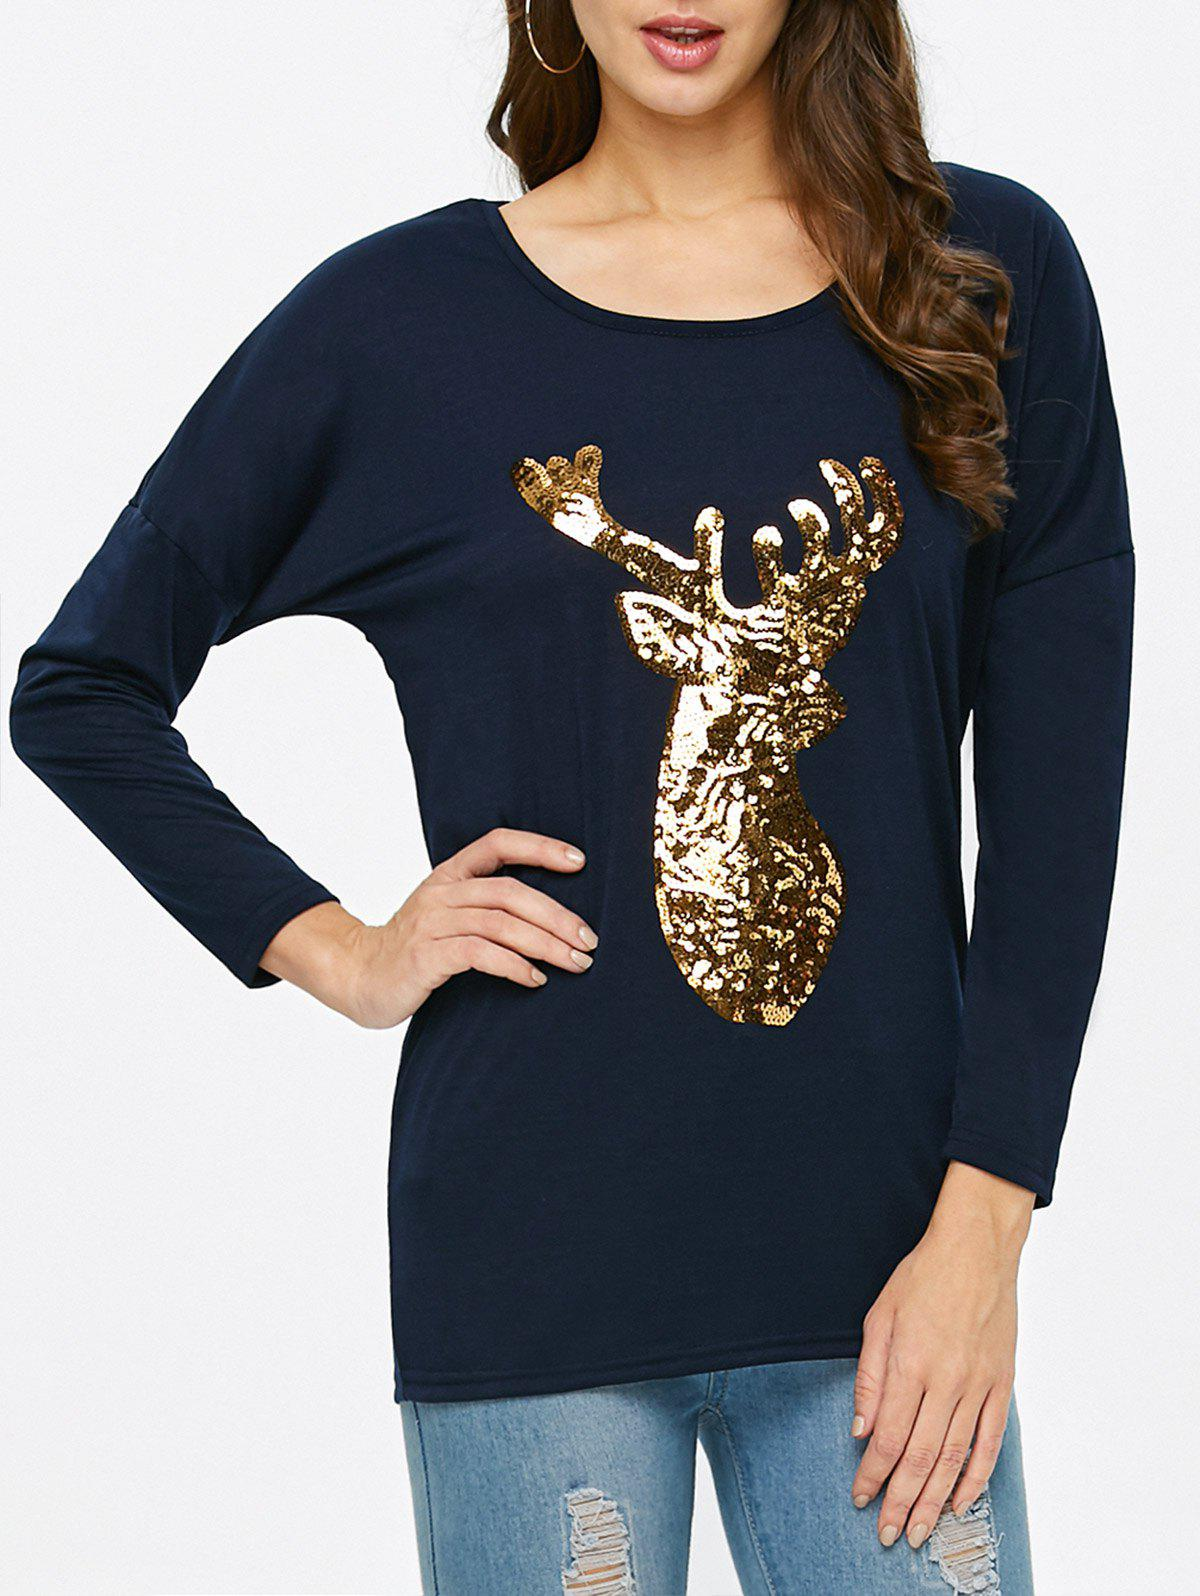 Deer Print Christmas Tee - PURPLISH BLUE XL